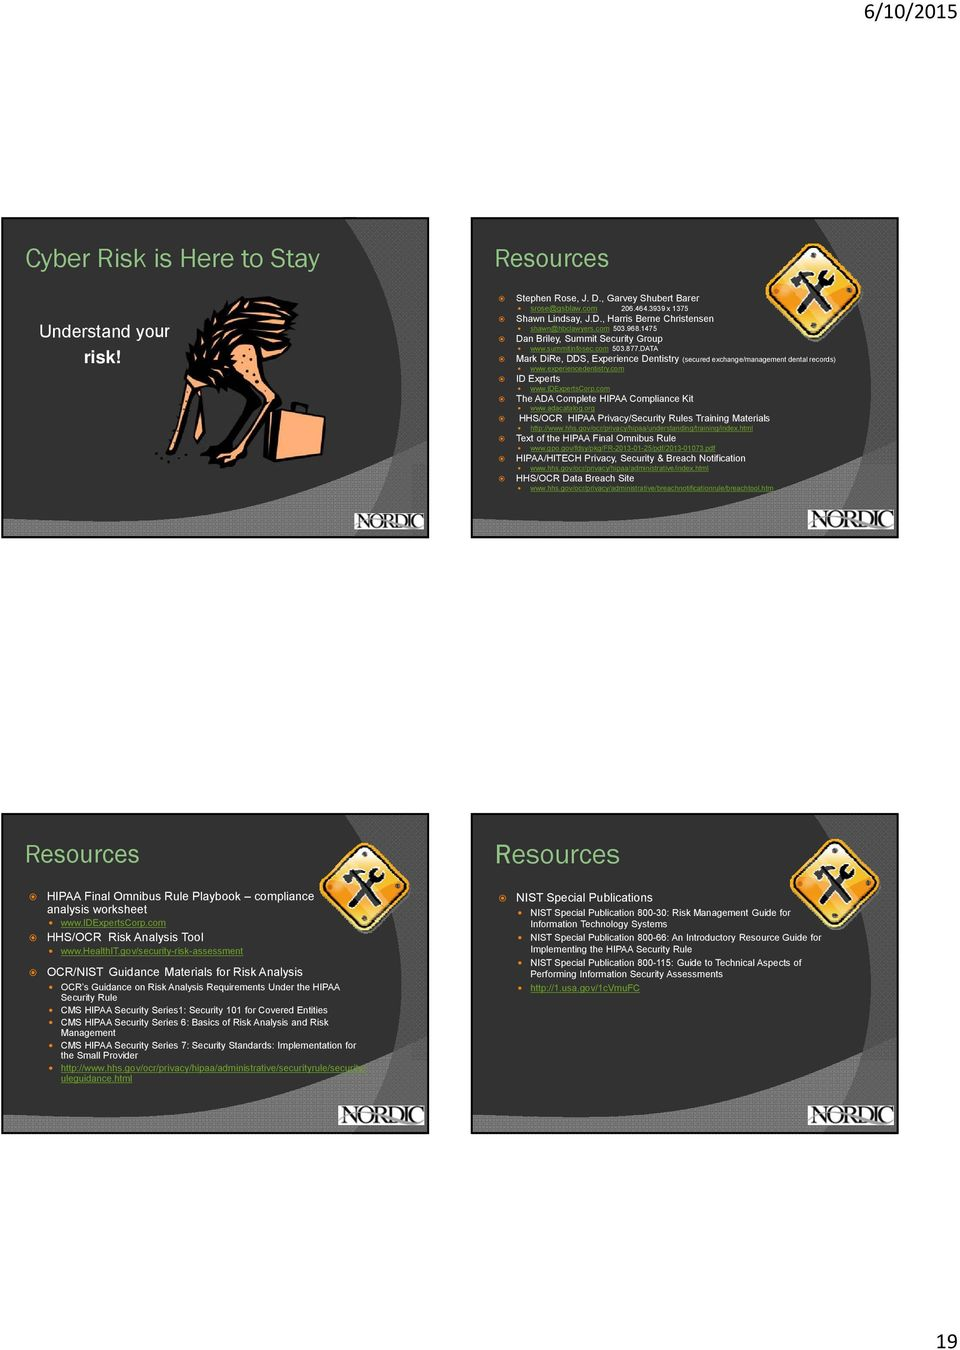 com ID Experts www.idexpertscorp.com The ADA Complete HIPAA Compliance Kit www.adacatalog.org HHS/OCR HIPAA Privacy/Security Rules Training Materials http://www.hhs.